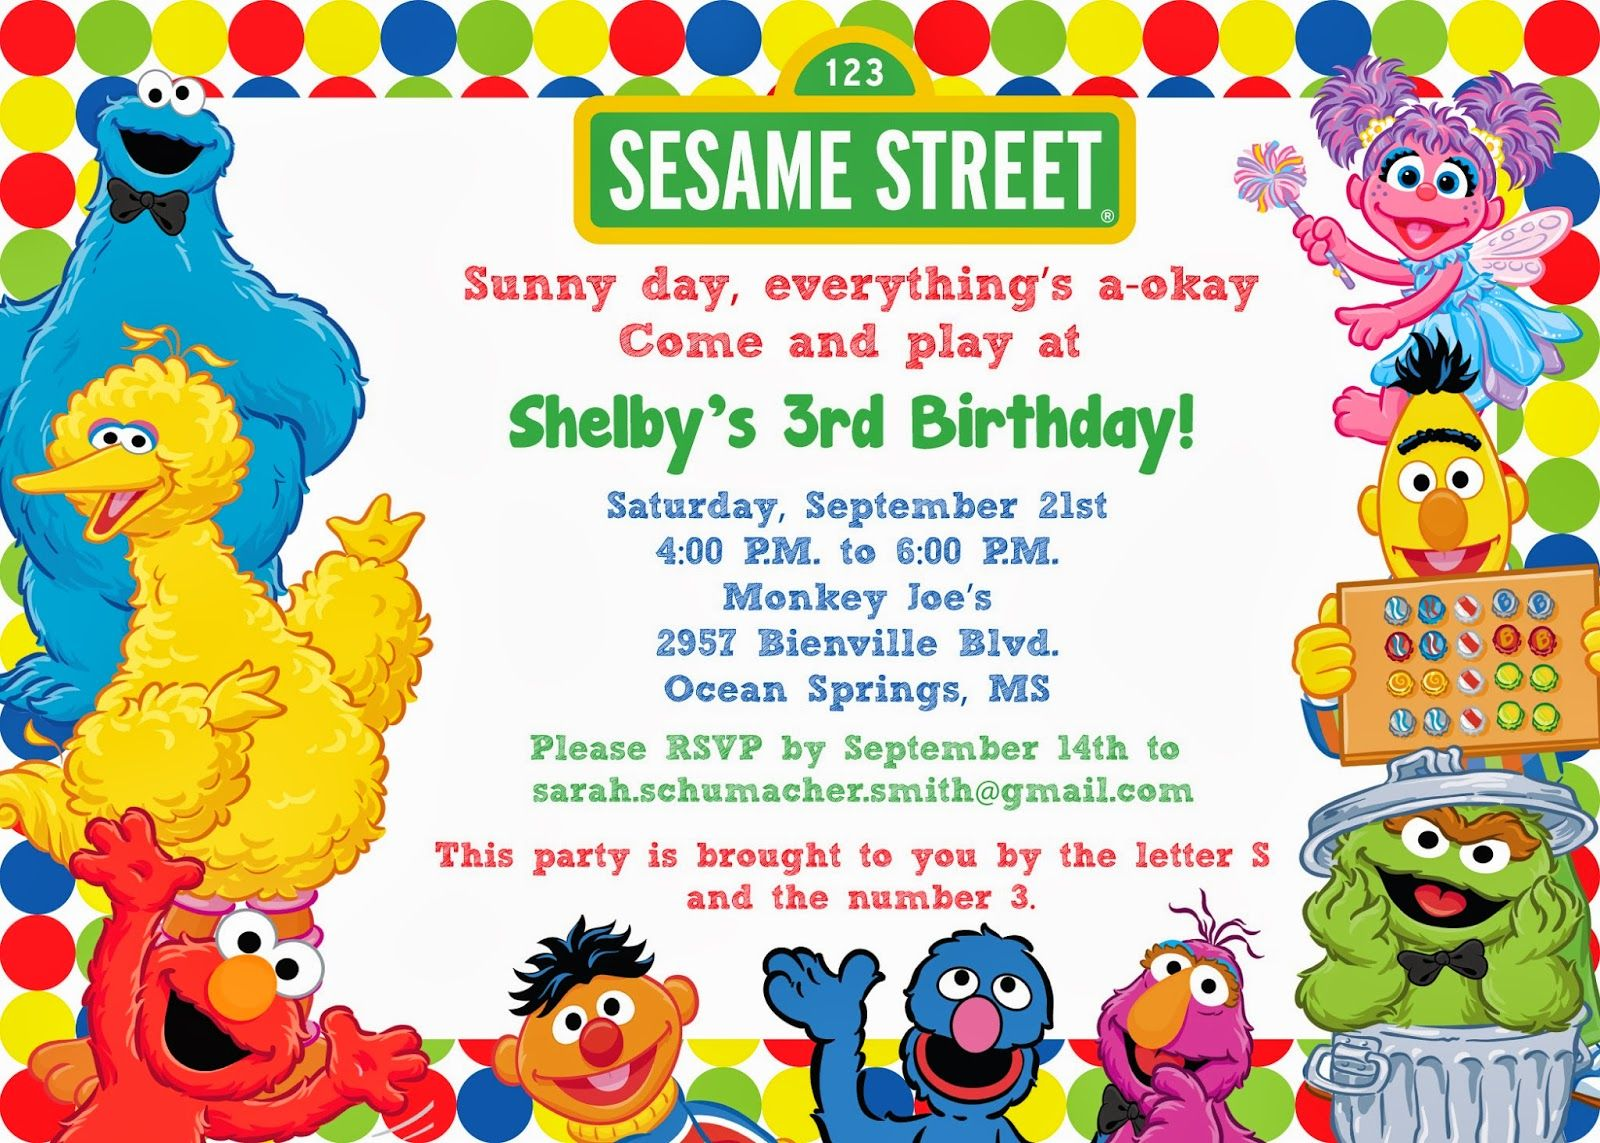 Best Sesame Street Invitations Ideas On Pinterest Sesame - Birthday day invitation letter